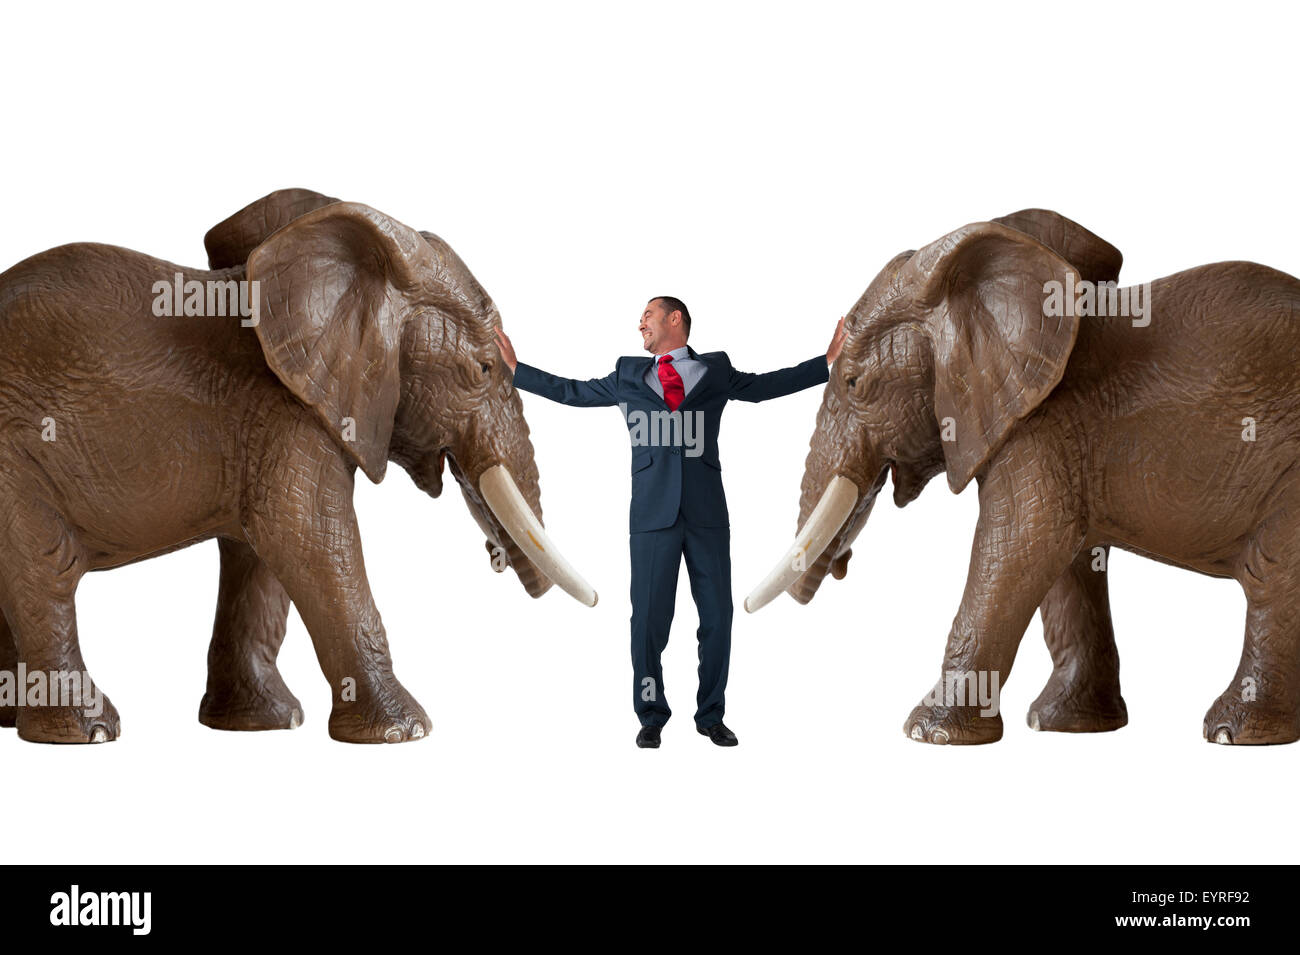 business conflict resolution mediation concept with businessman separating angry elephants - Stock Image